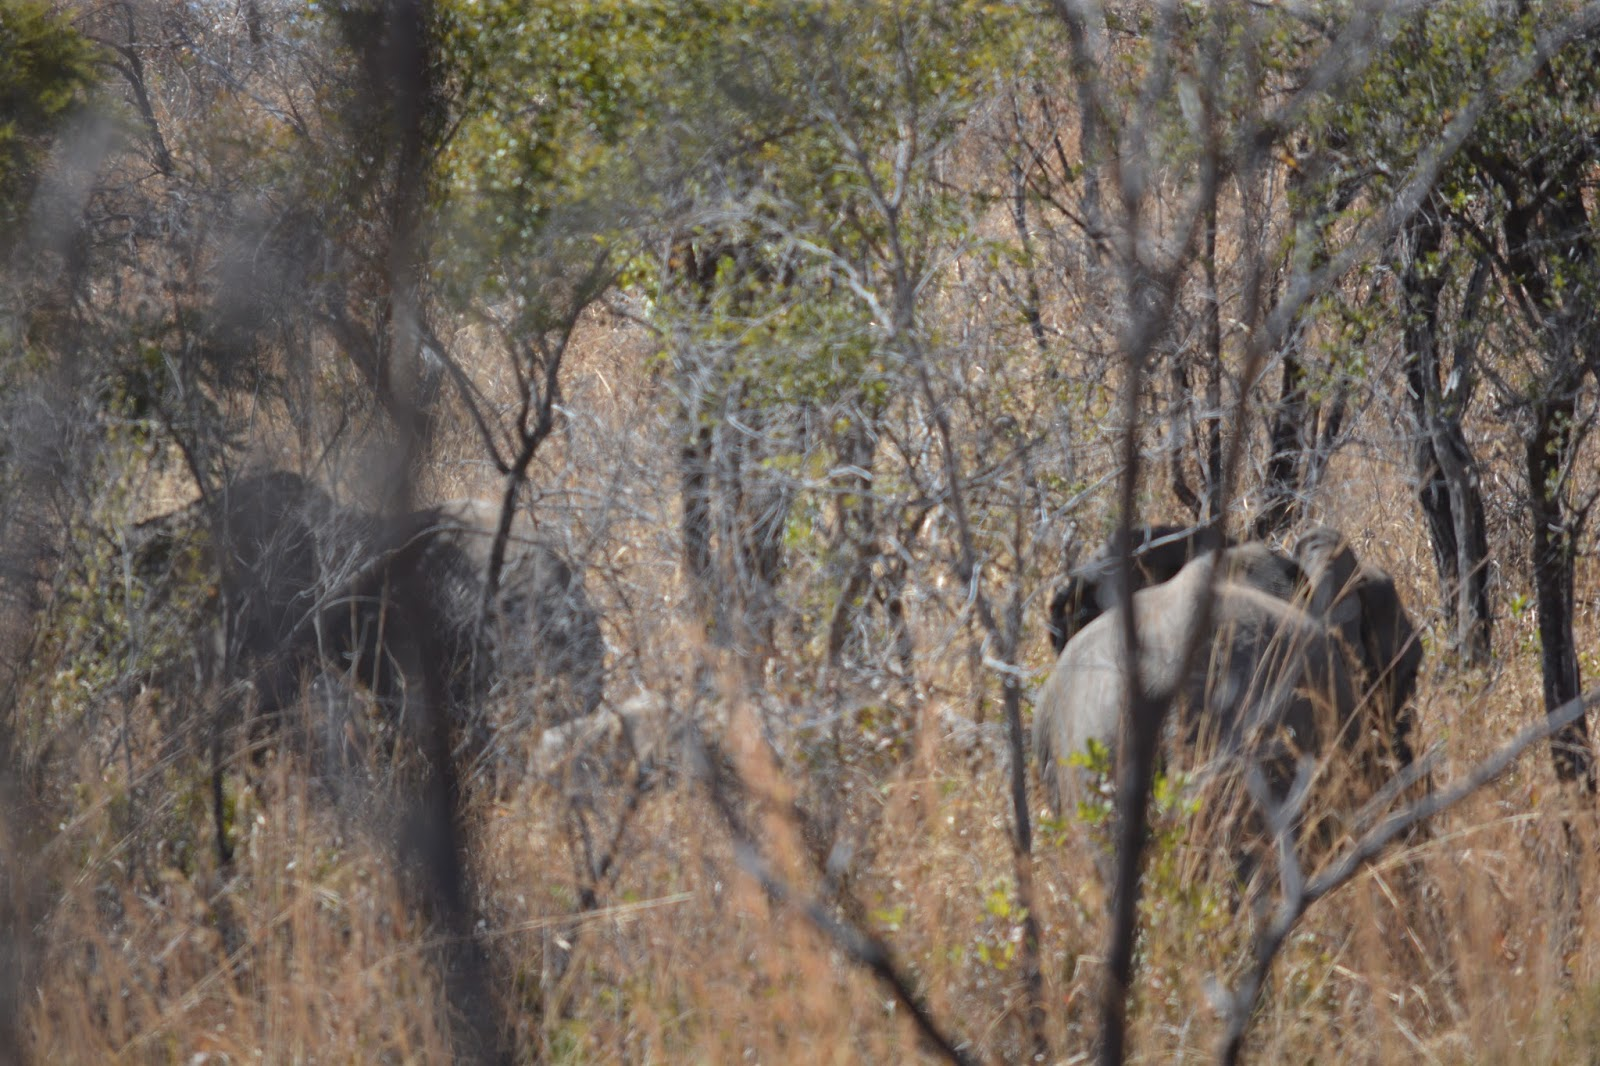 hunting elephants essay a photo essay hidden elephants the smoke of africa